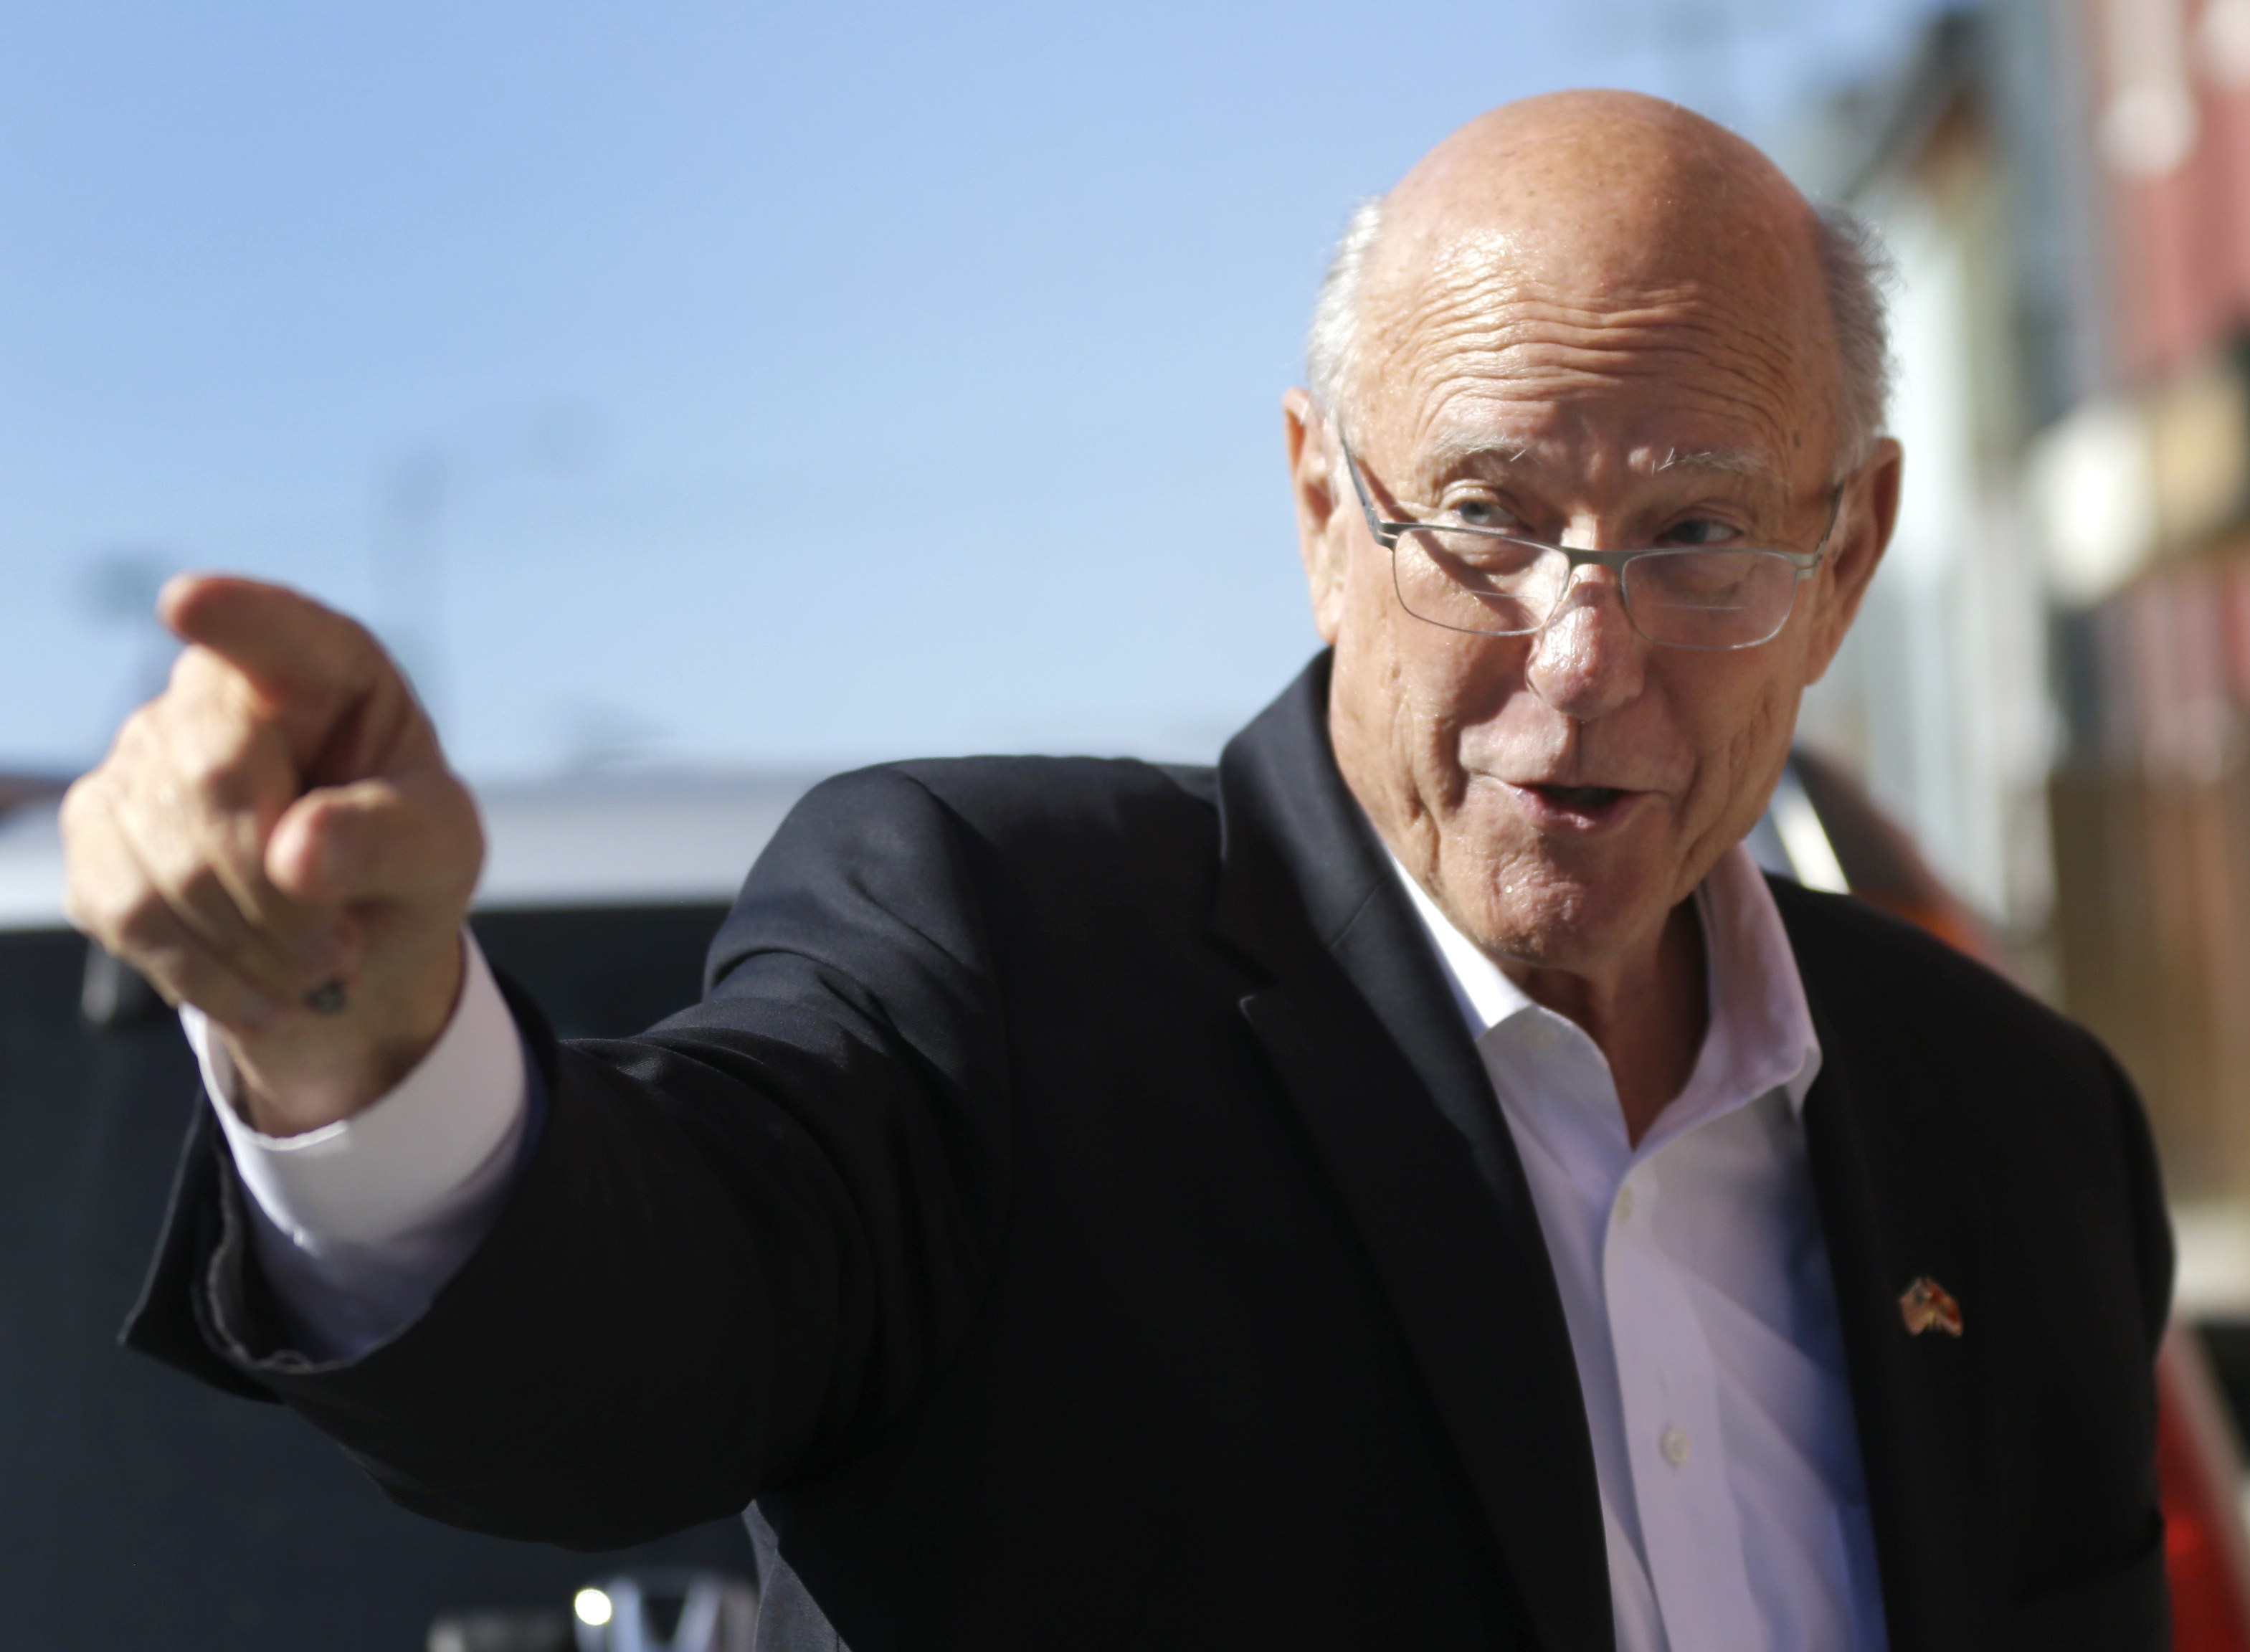 Sen. Pat Roberts (R-Kansas) points to supporters during a campaign stop in Leavenworth